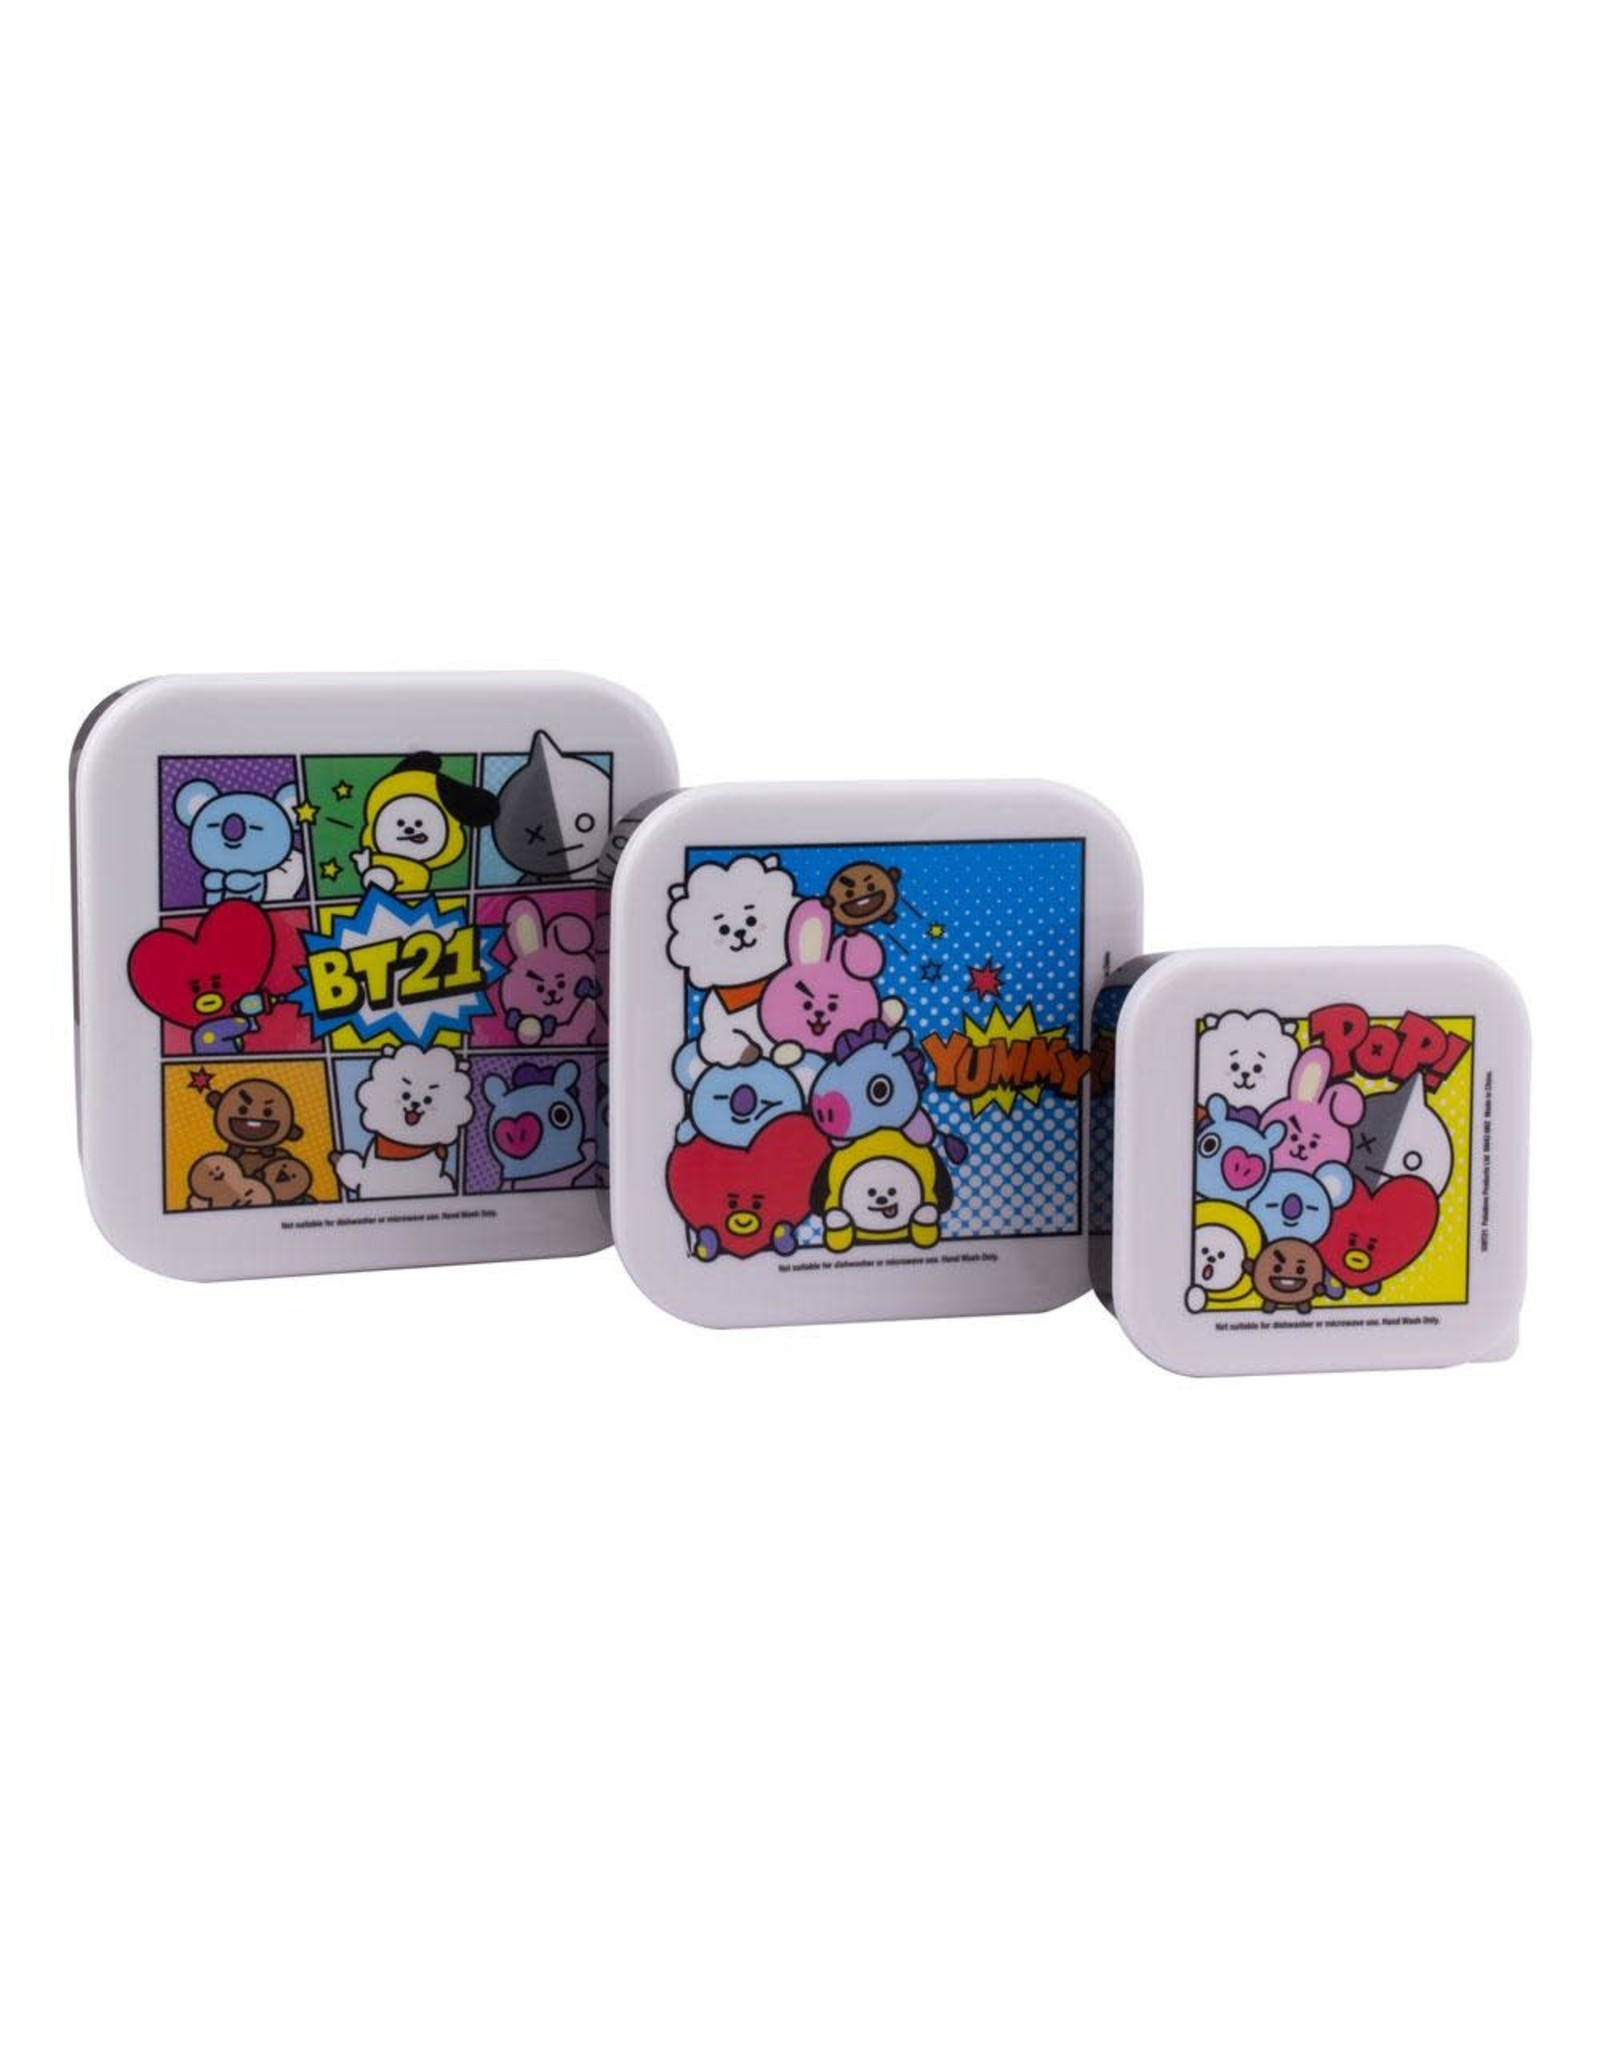 BT21 - Set of 3 Snack Boxes